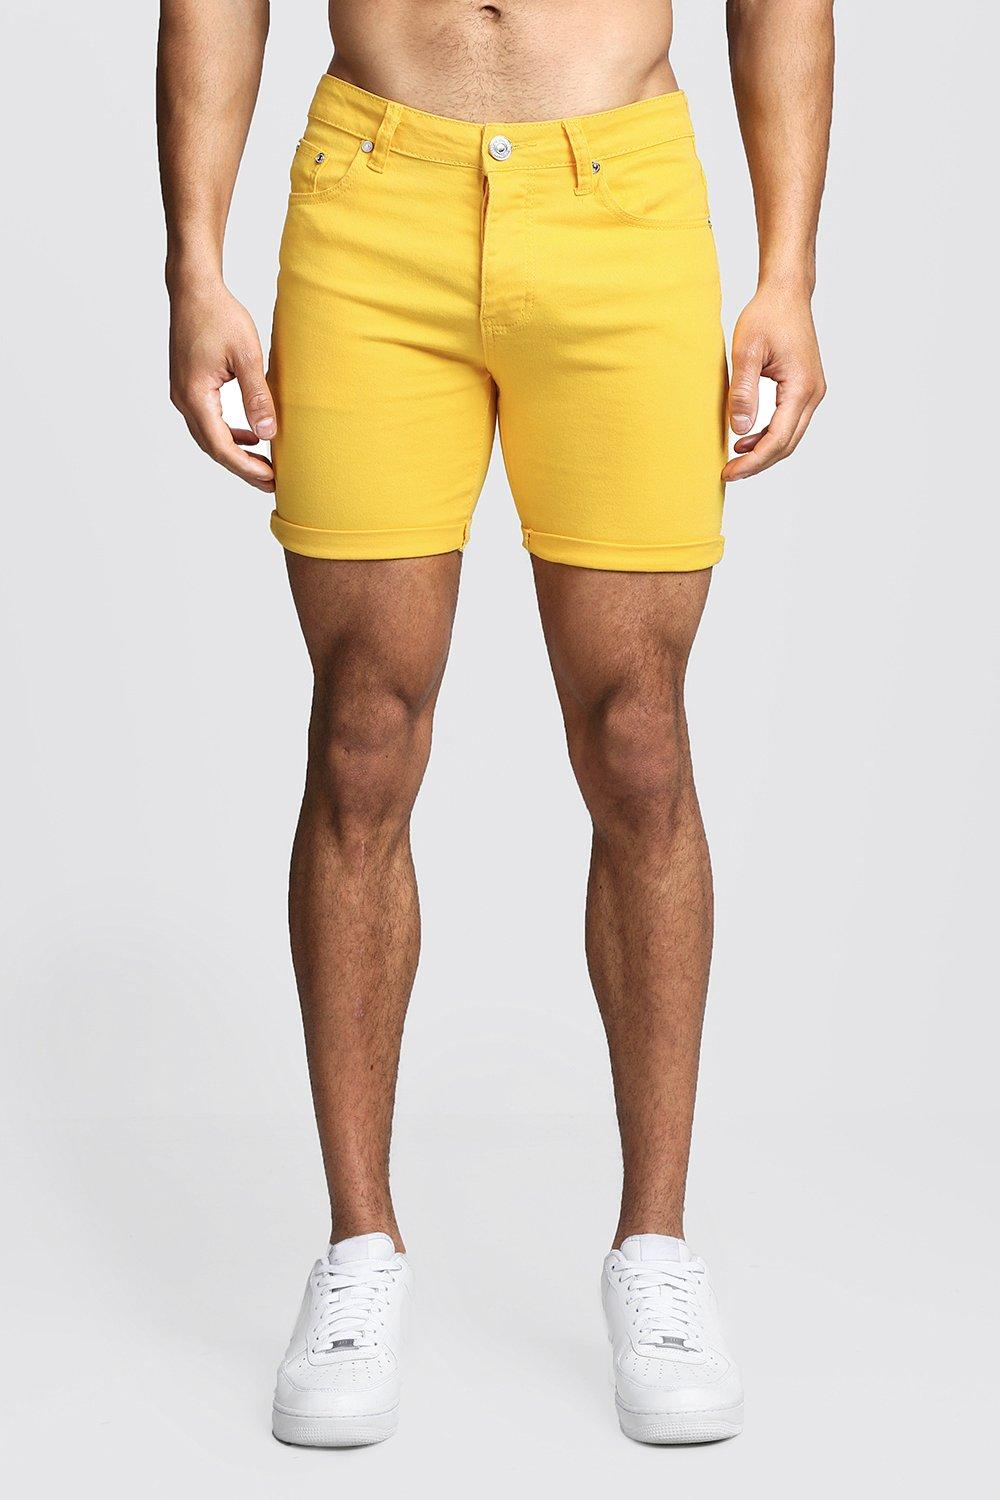 Skinny Fit Yellow Denim Shorts